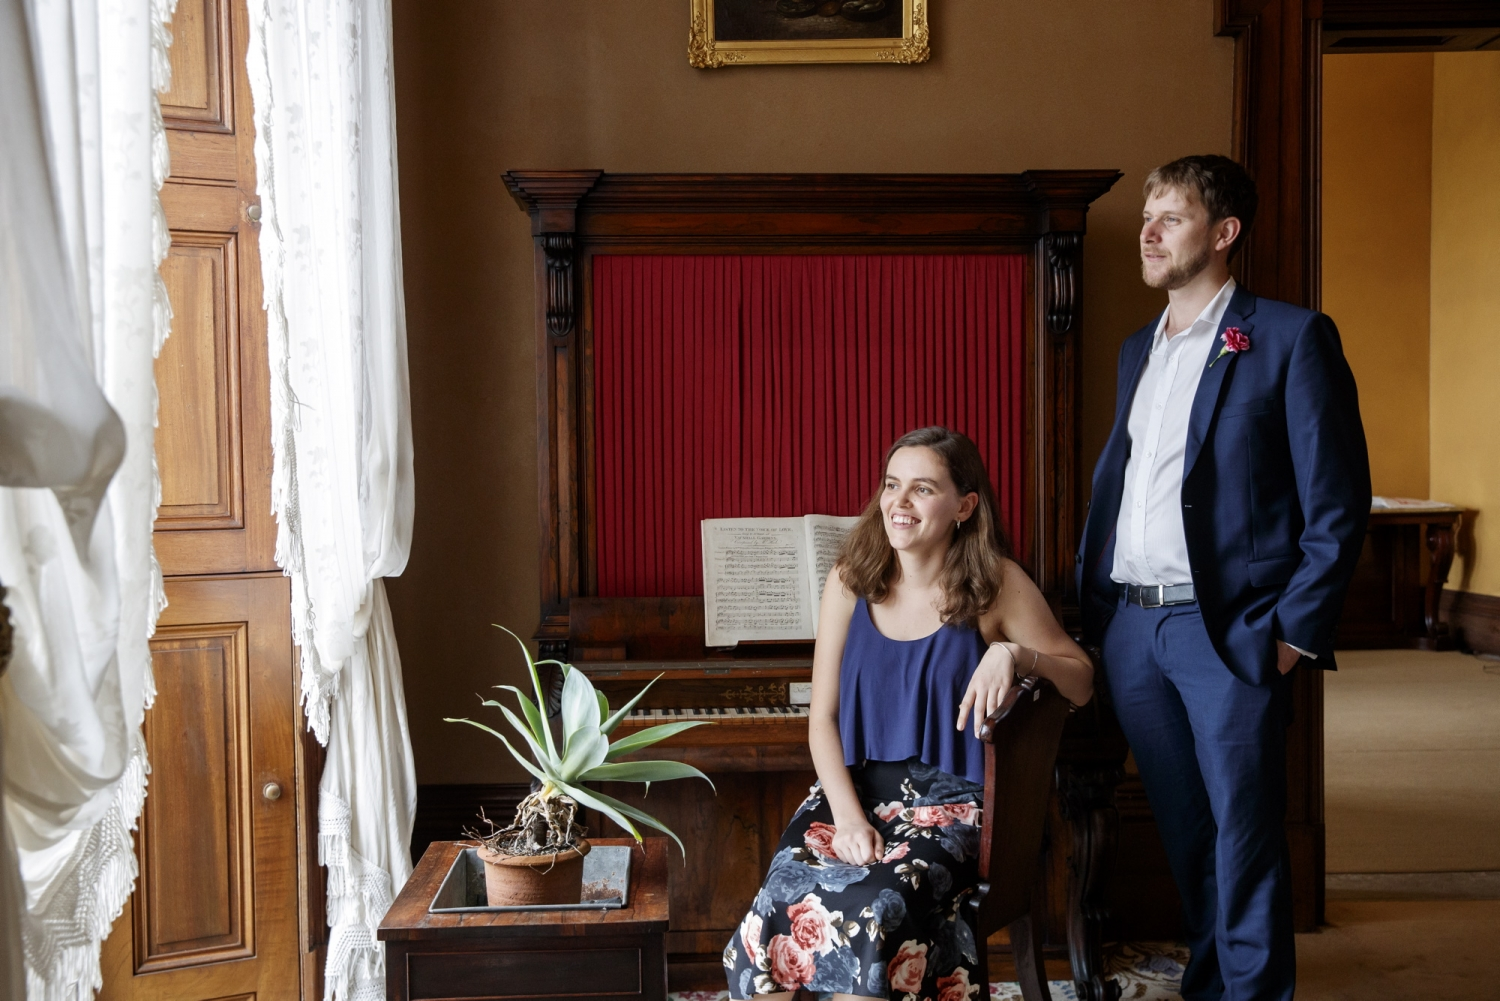 Performers James Doig and Nyssa Milligan in the drawing room at Elizabeth Bay House.